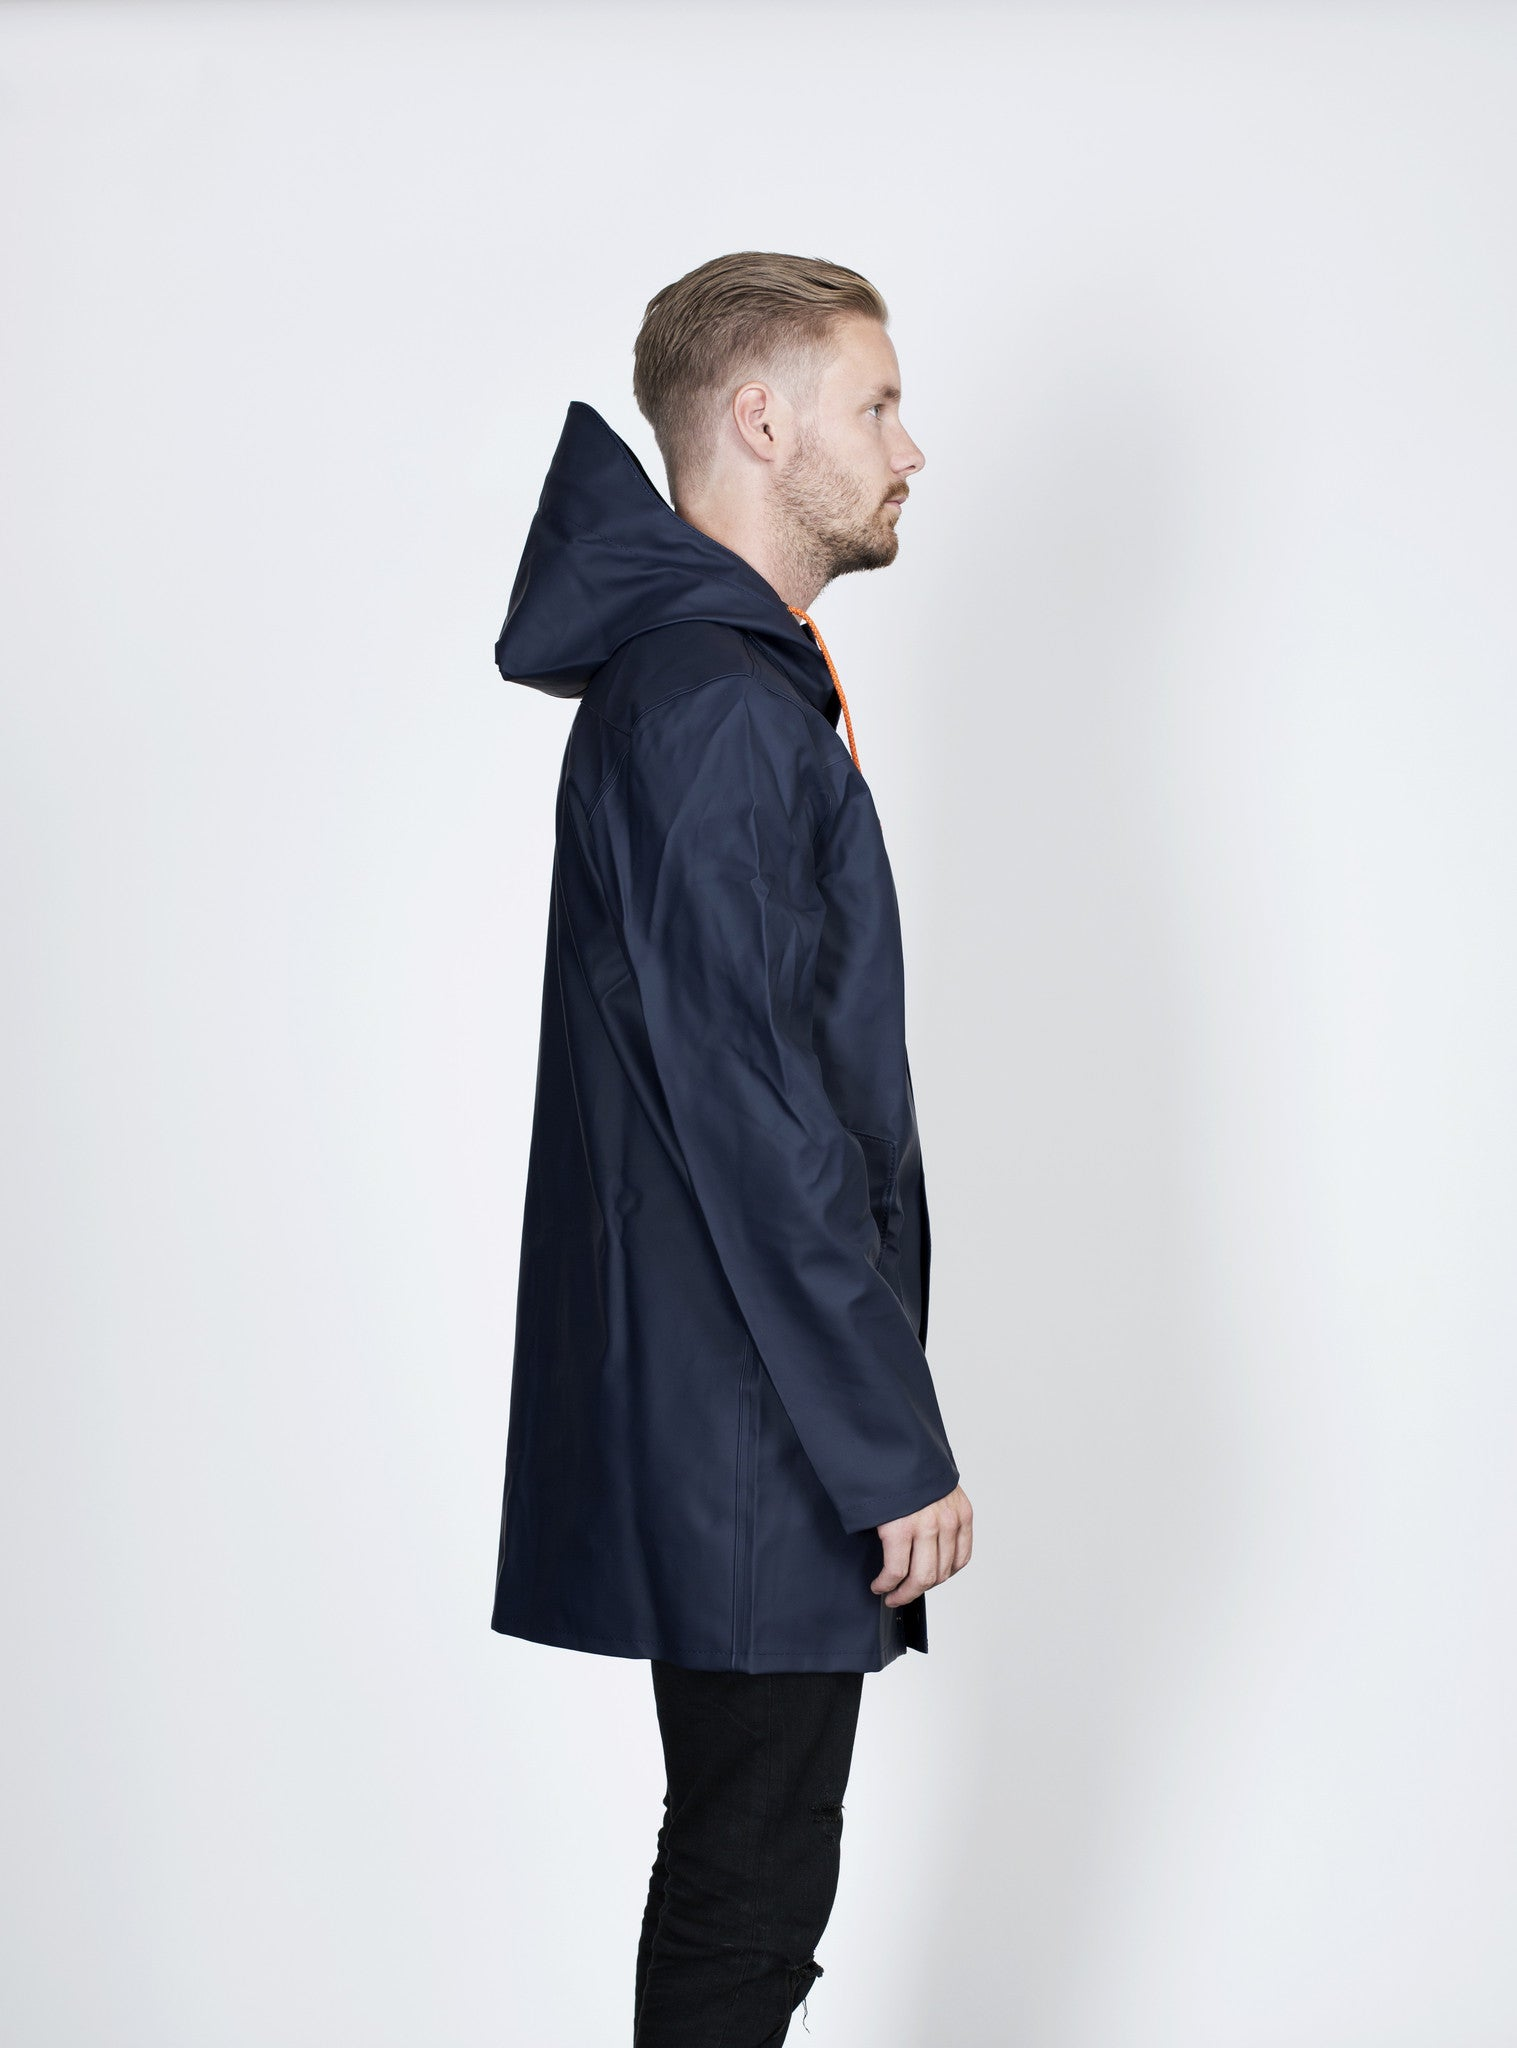 FISKARN - NAVY BLUE